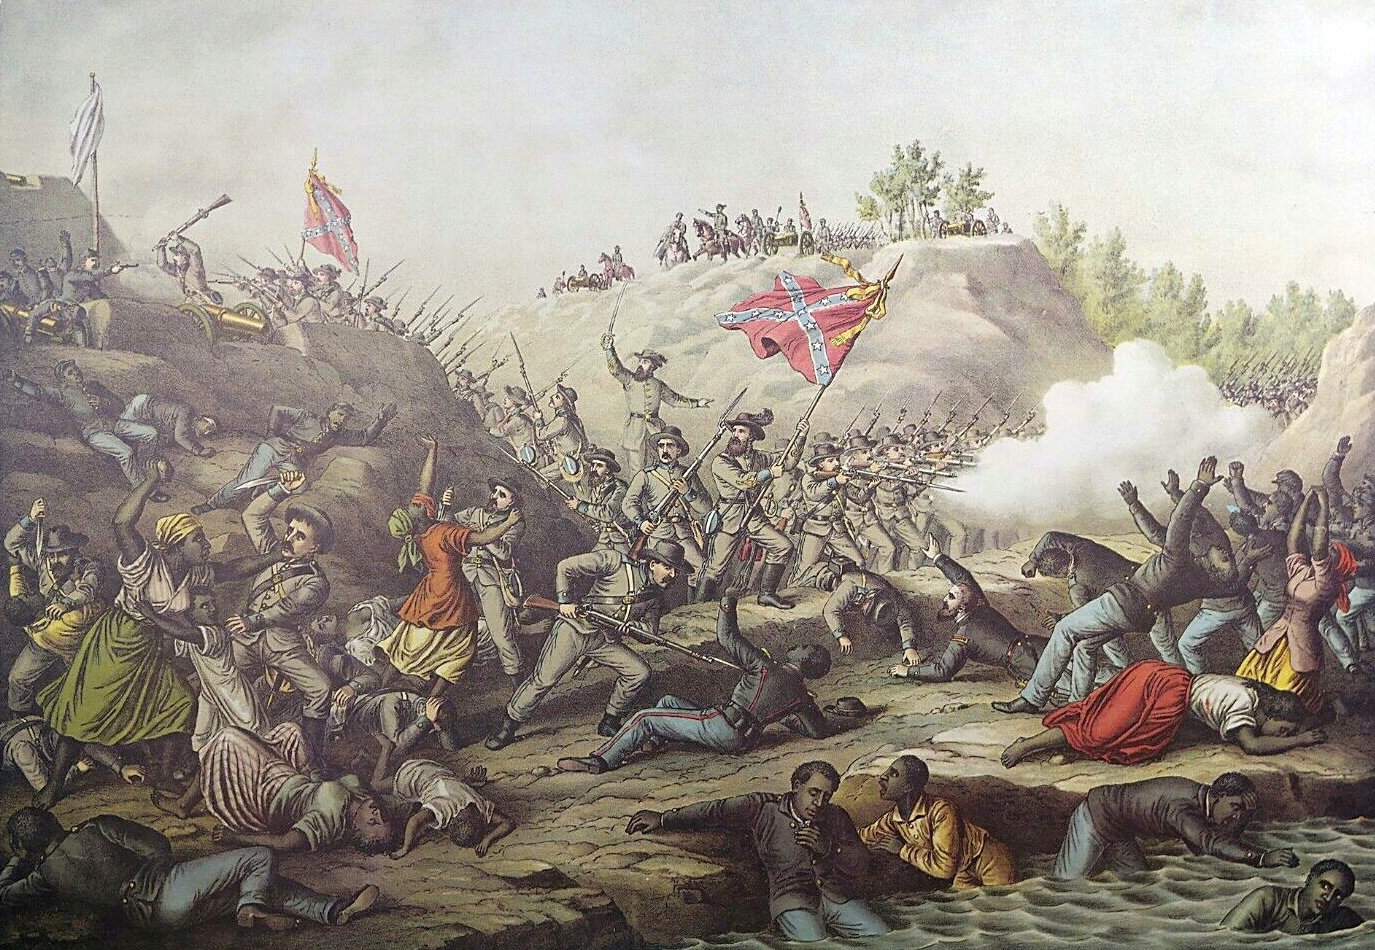 a history of the fort pillow massacre in the american civil war Choose from 500 different sets of chapter 11 section 3 us history flashcards on quizlet log in sign up  what happened at fort pillow, tennessee  civil war nurse who later founded the american red cross.